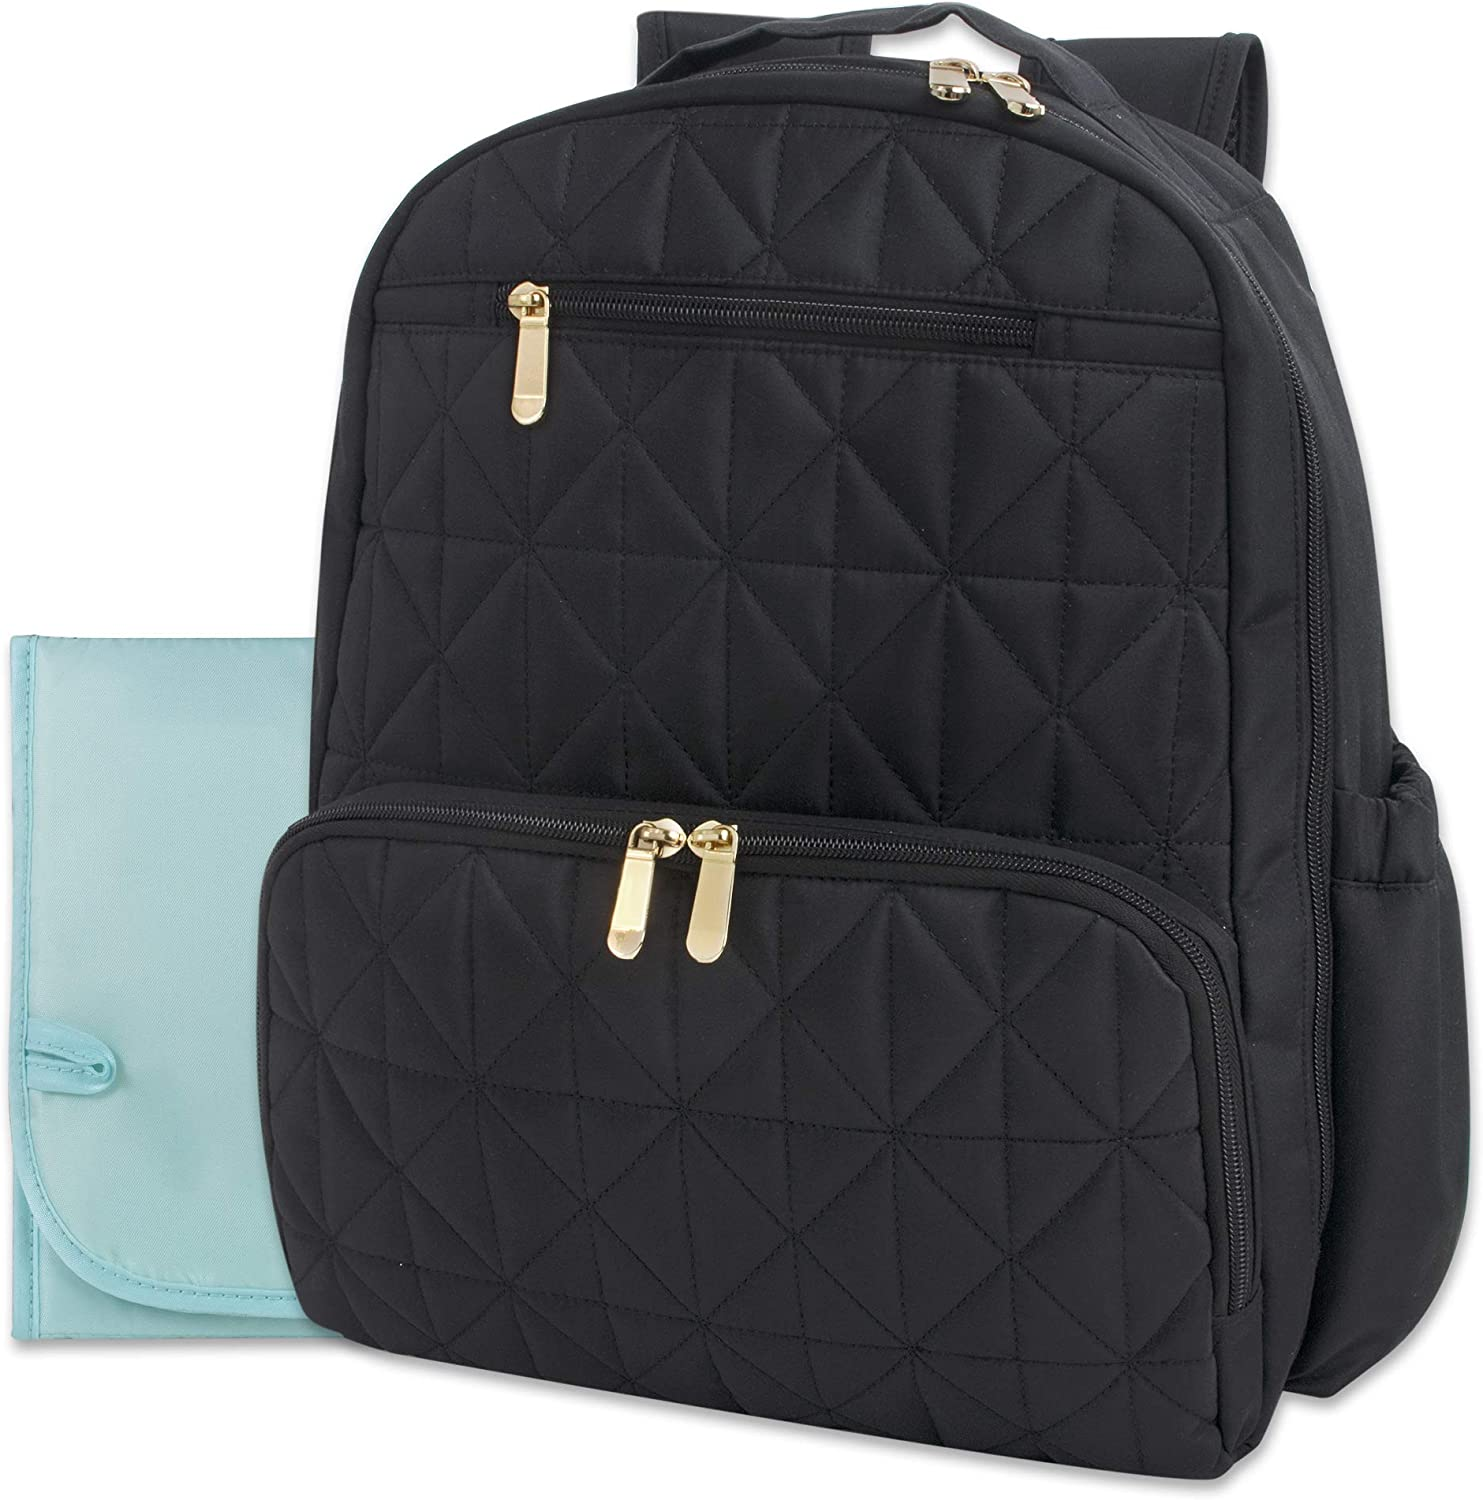 Quilted Diaper Bag Backpack with Insulated Compartment, Changing Pad – 2 Piece Set